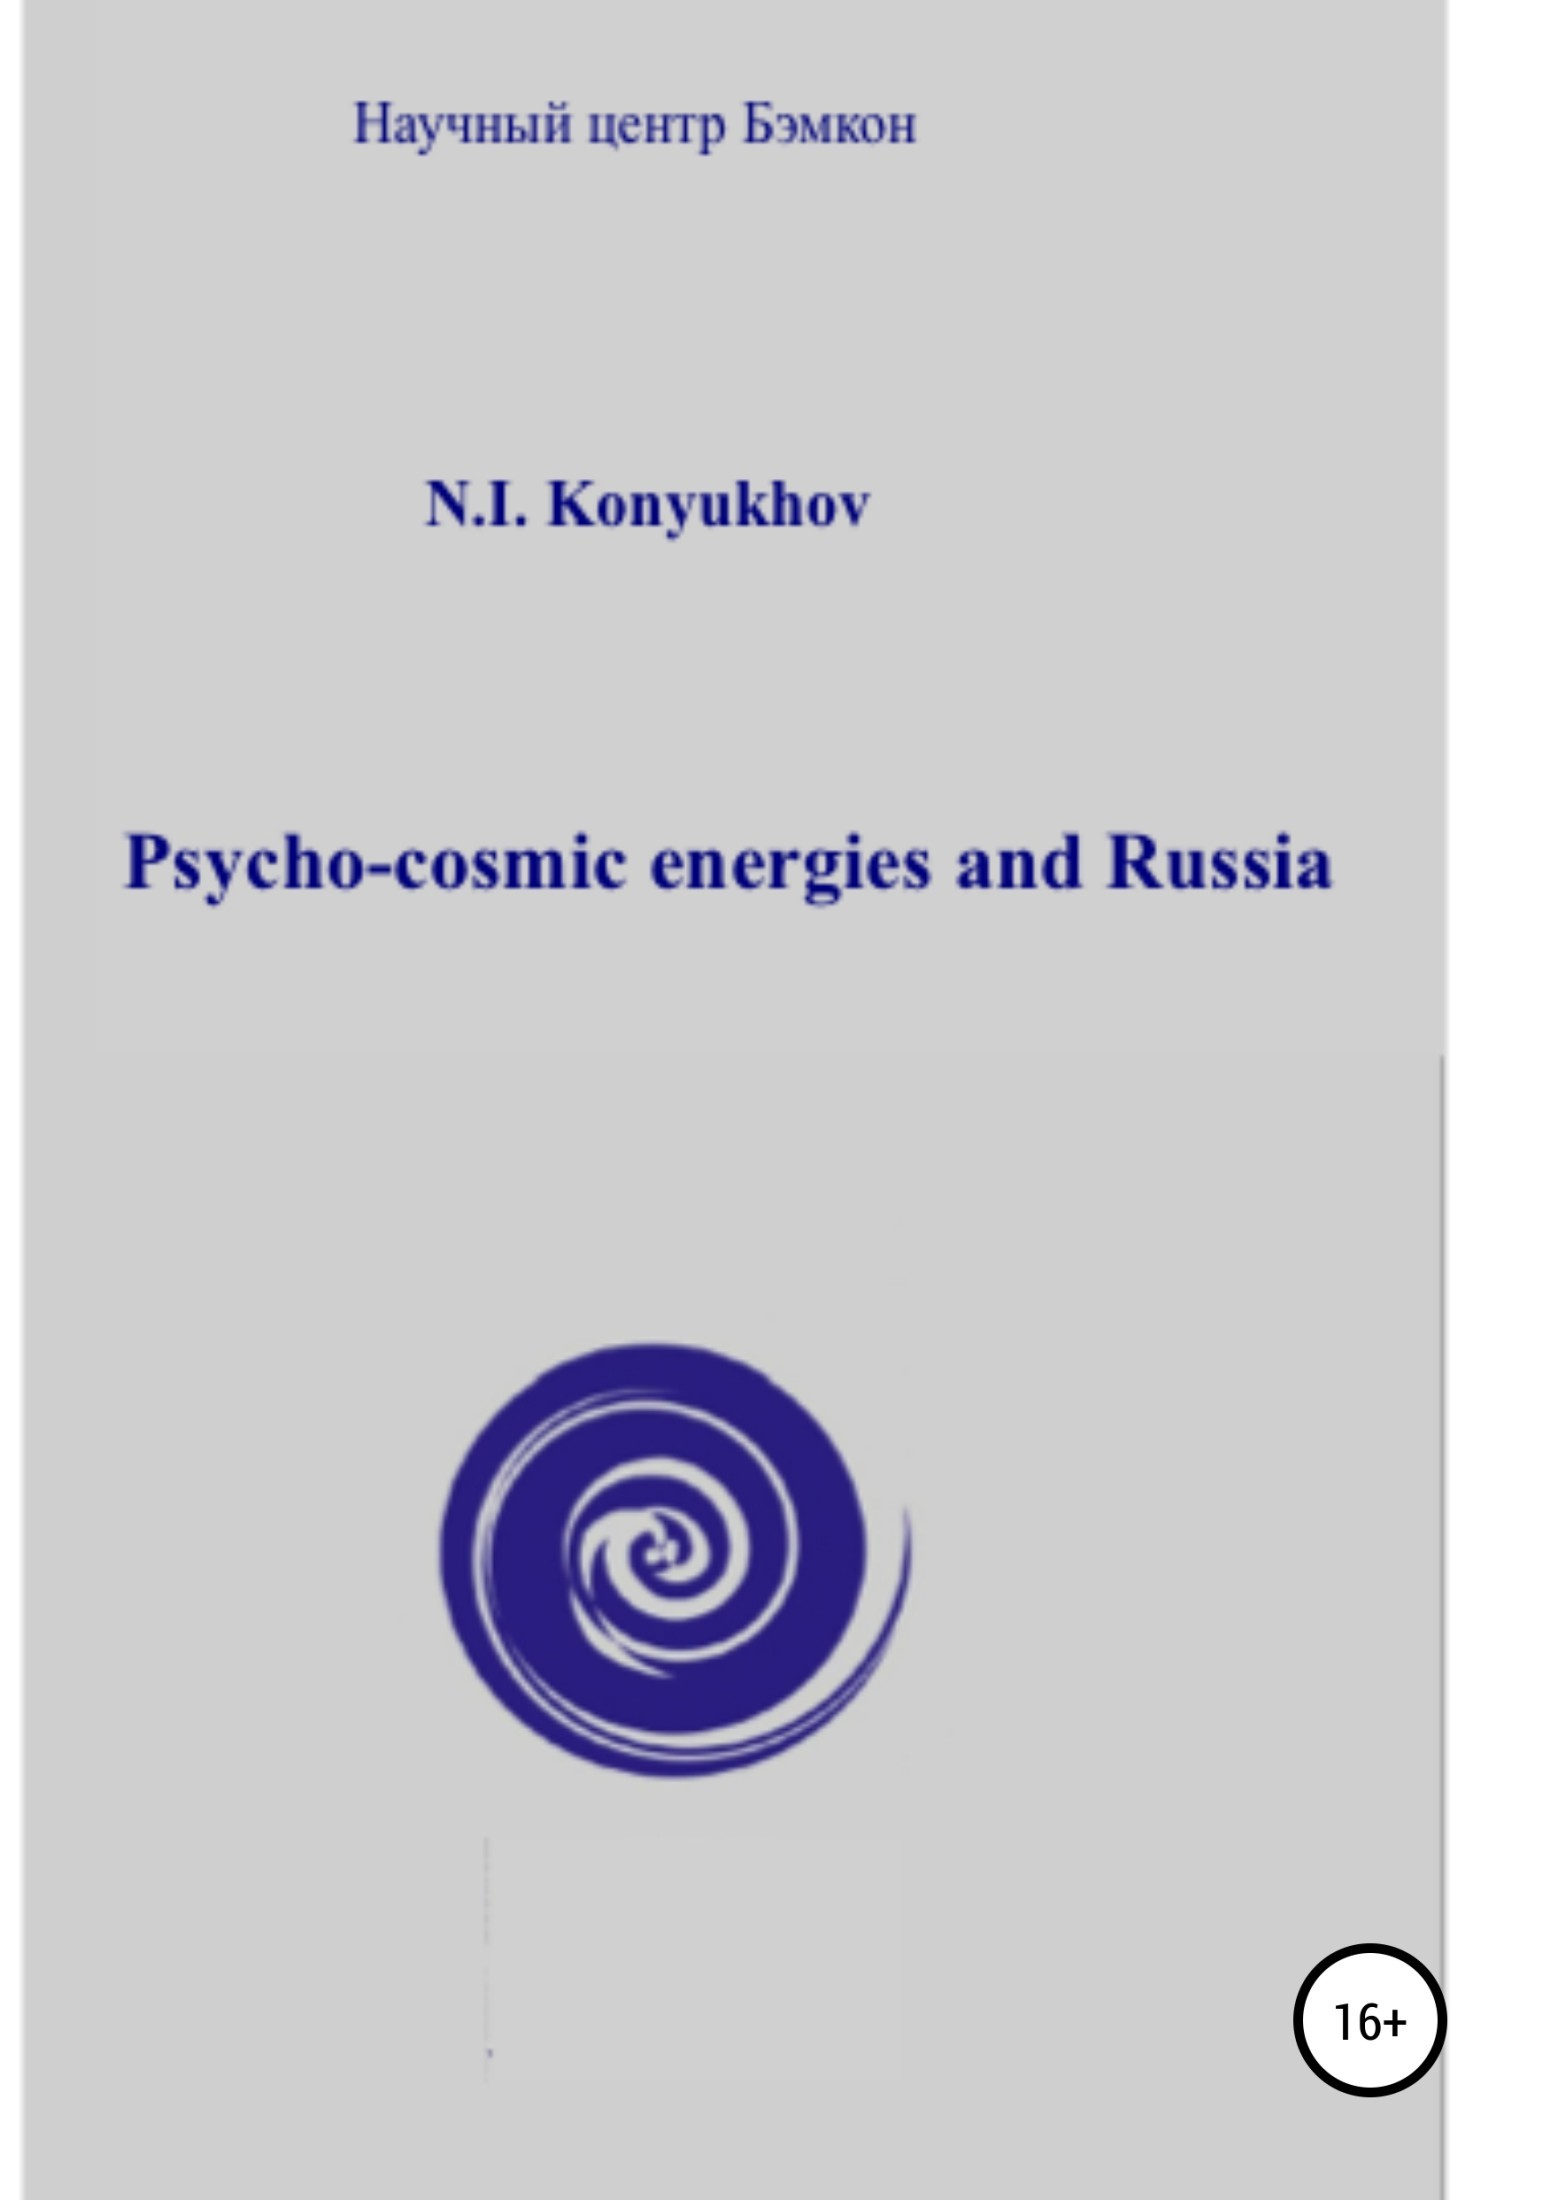 Psycho-cosmic energies and Russia